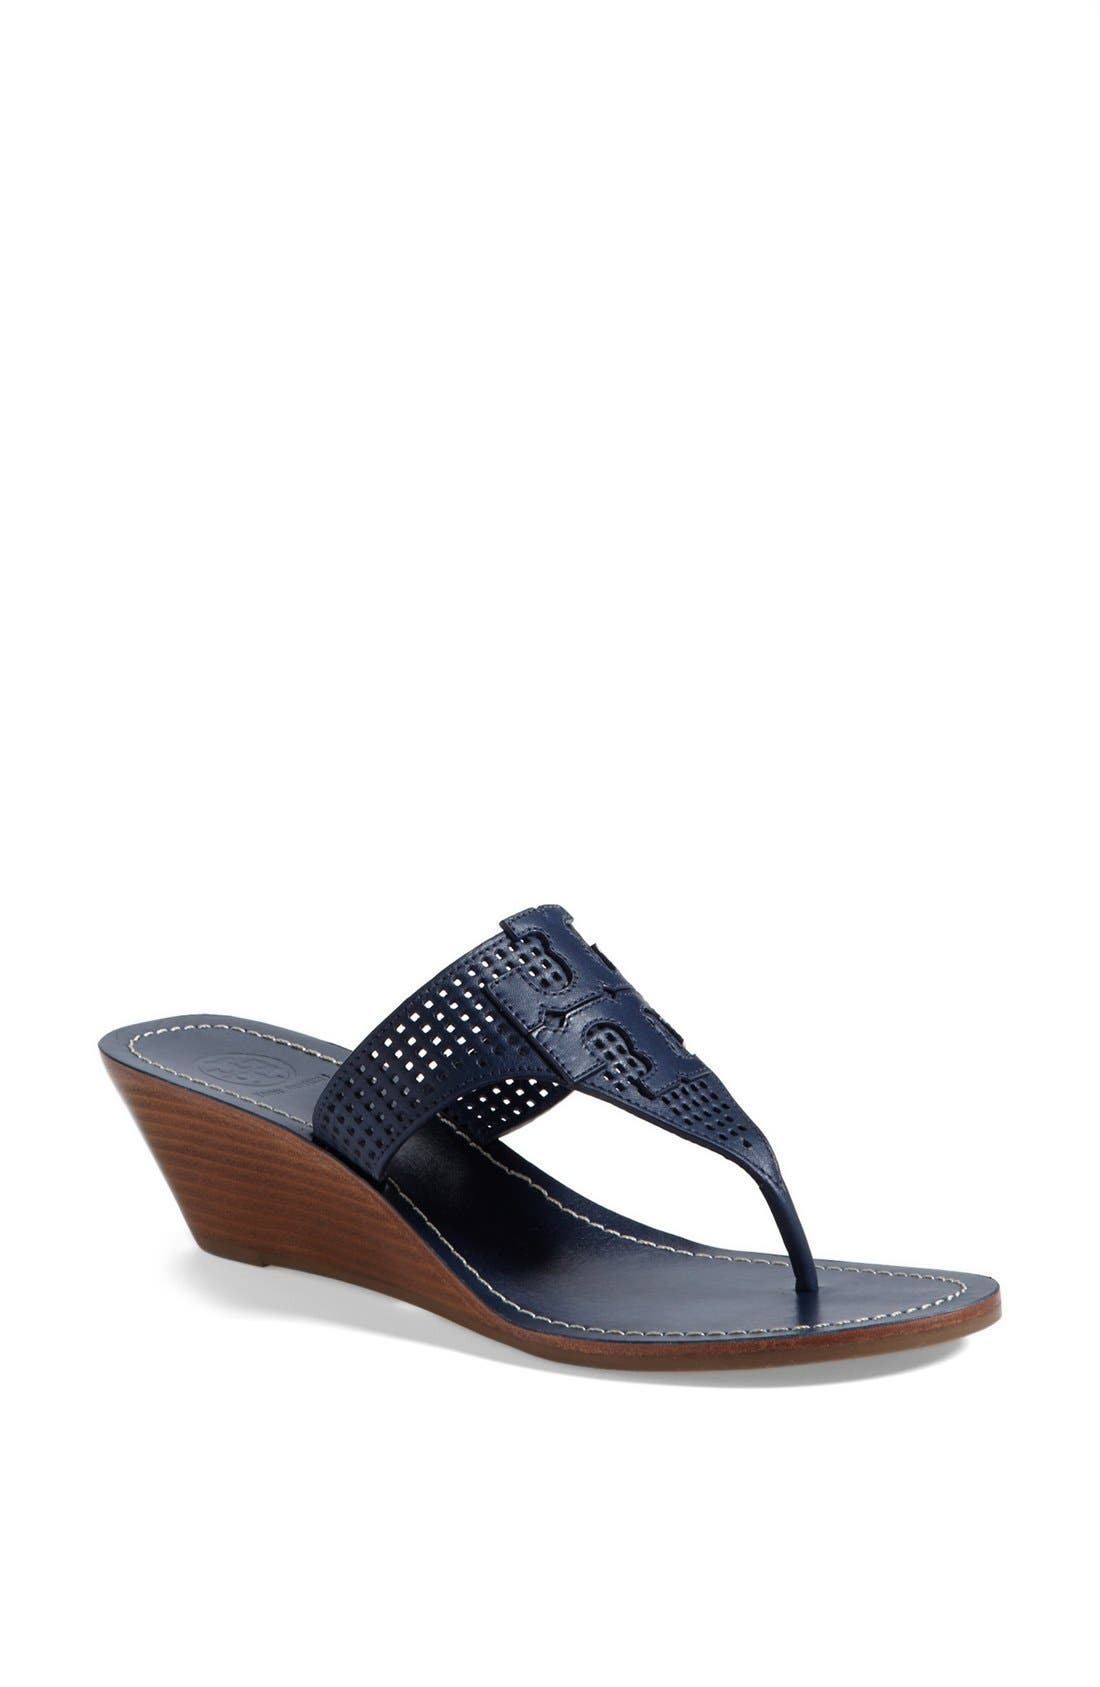 Alternate Image 1 Selected - Tory Burch 'Mcfee' Wedge Sandal (Online Only)